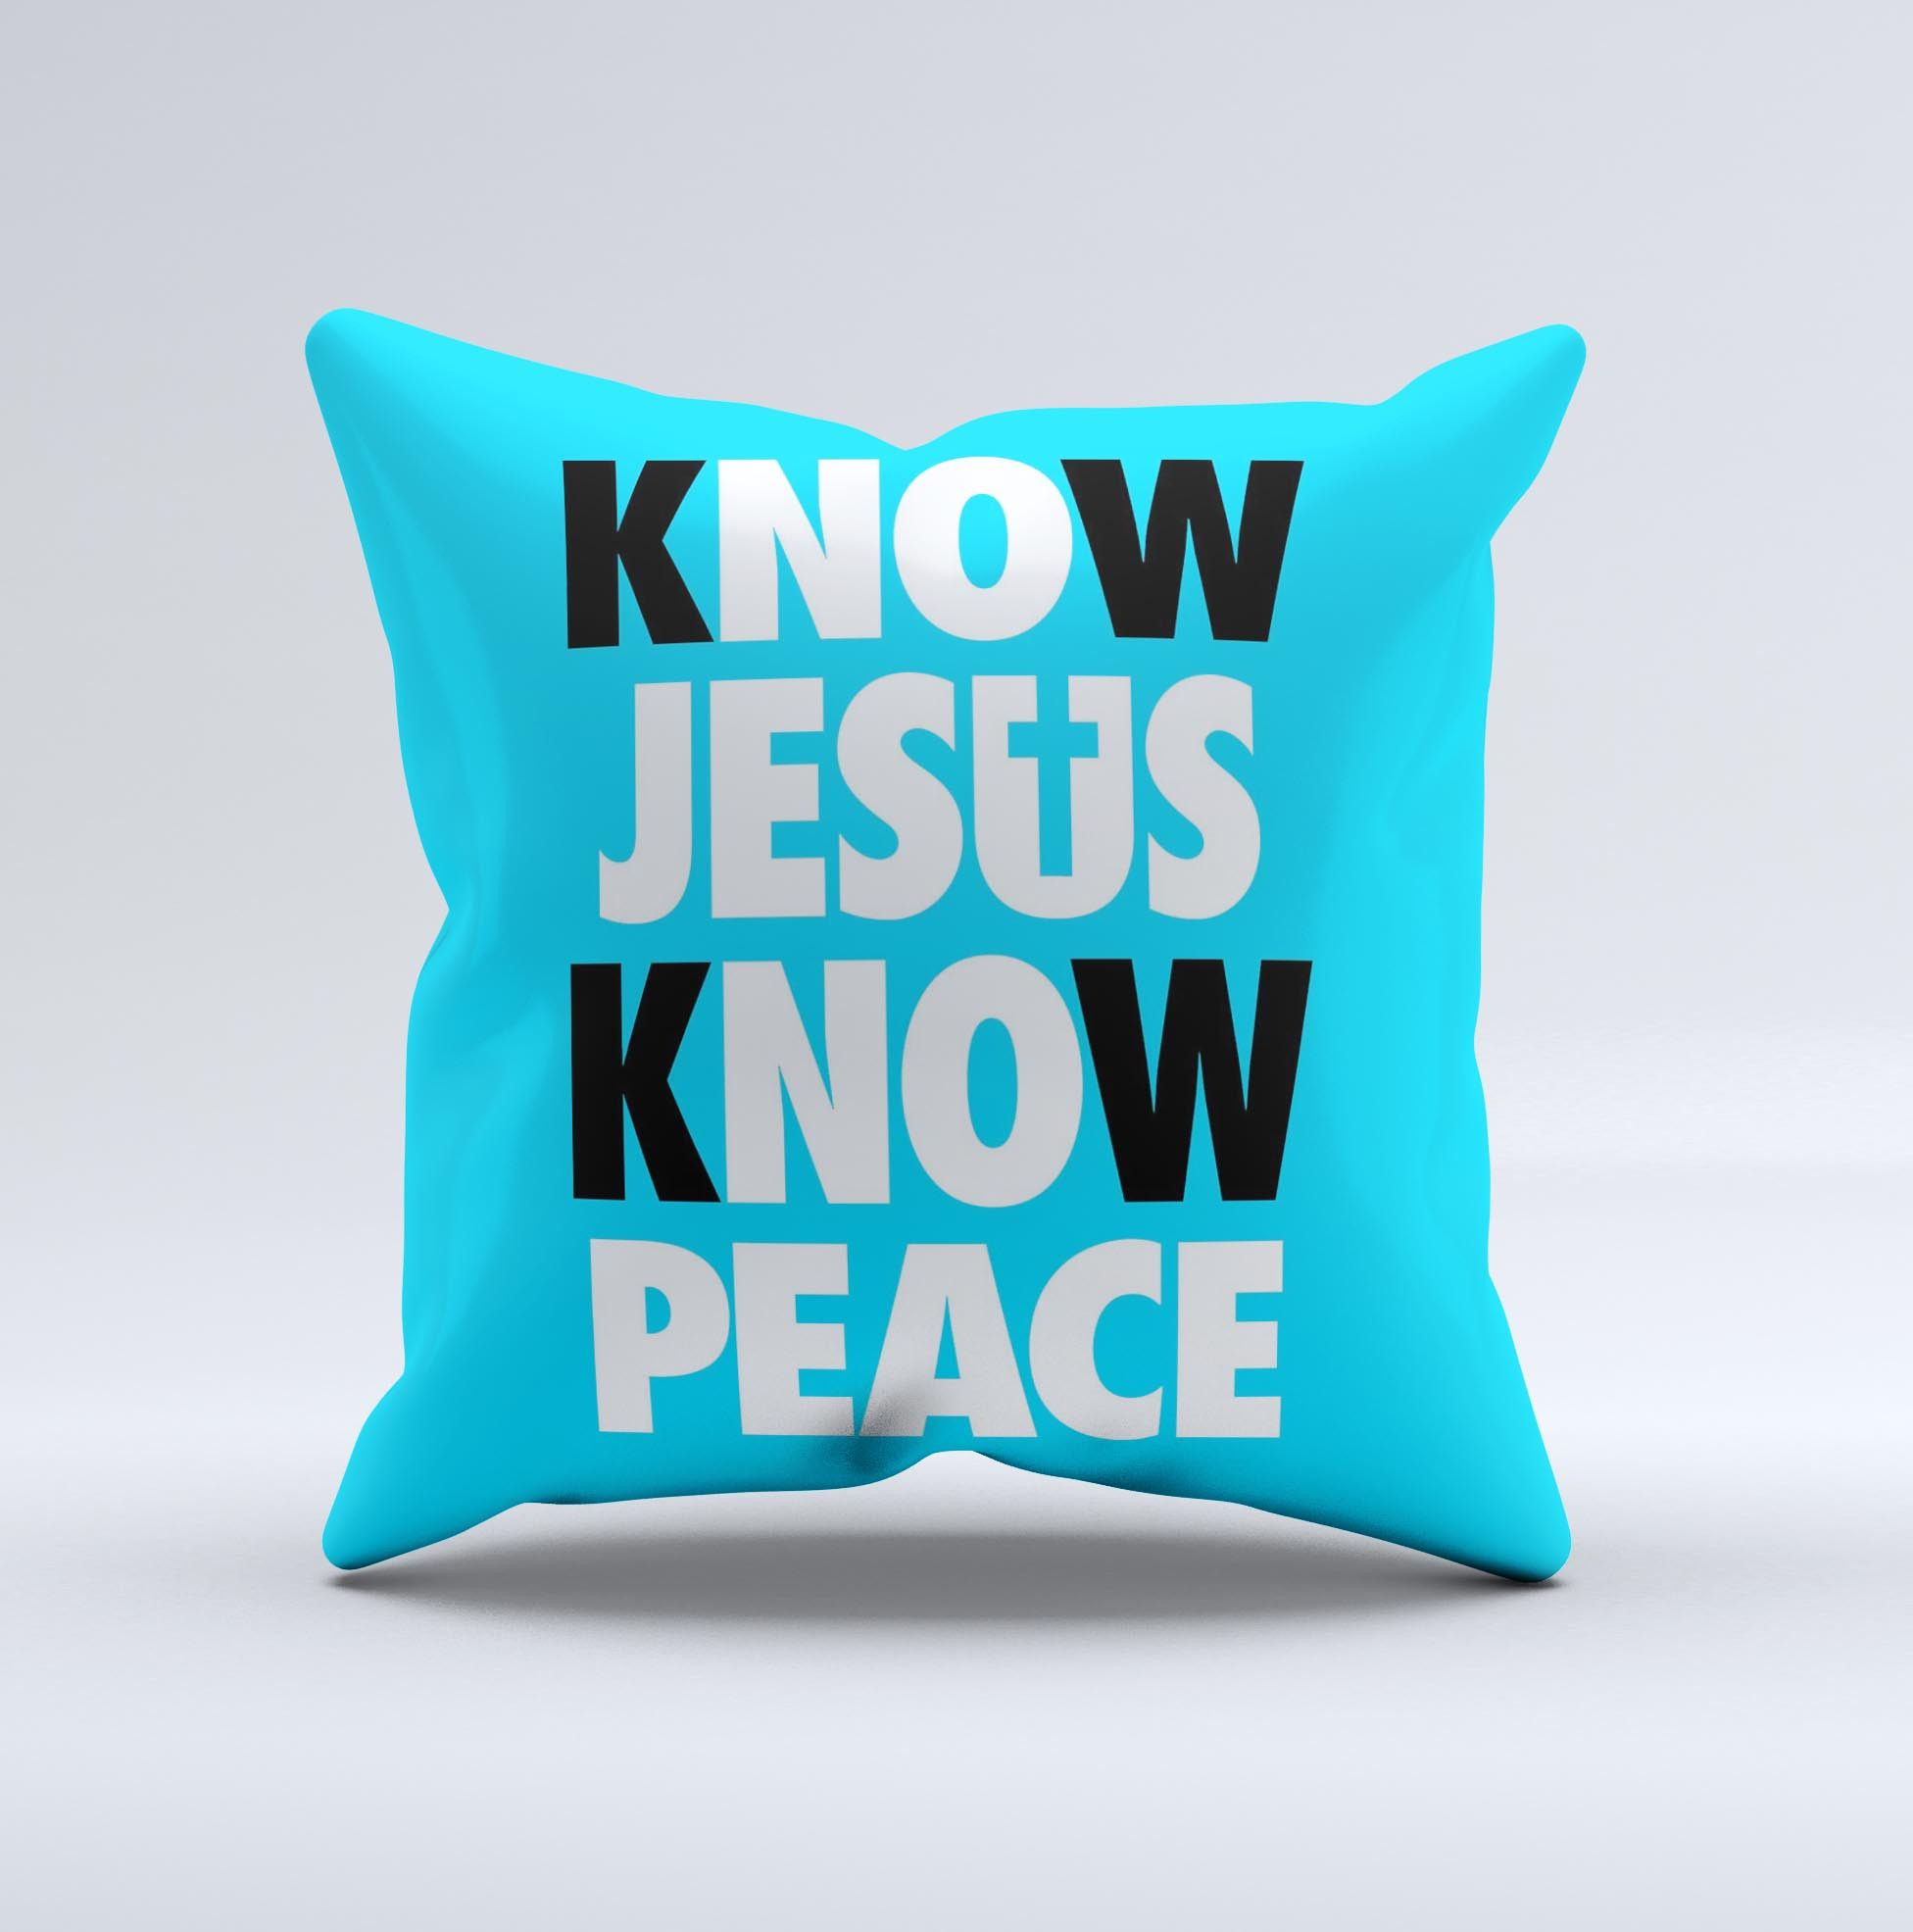 Know Jesus Know Peace - White and Black Over Blue  Ink-Fuzed Decorative Throw Pillow from DesignSkinz